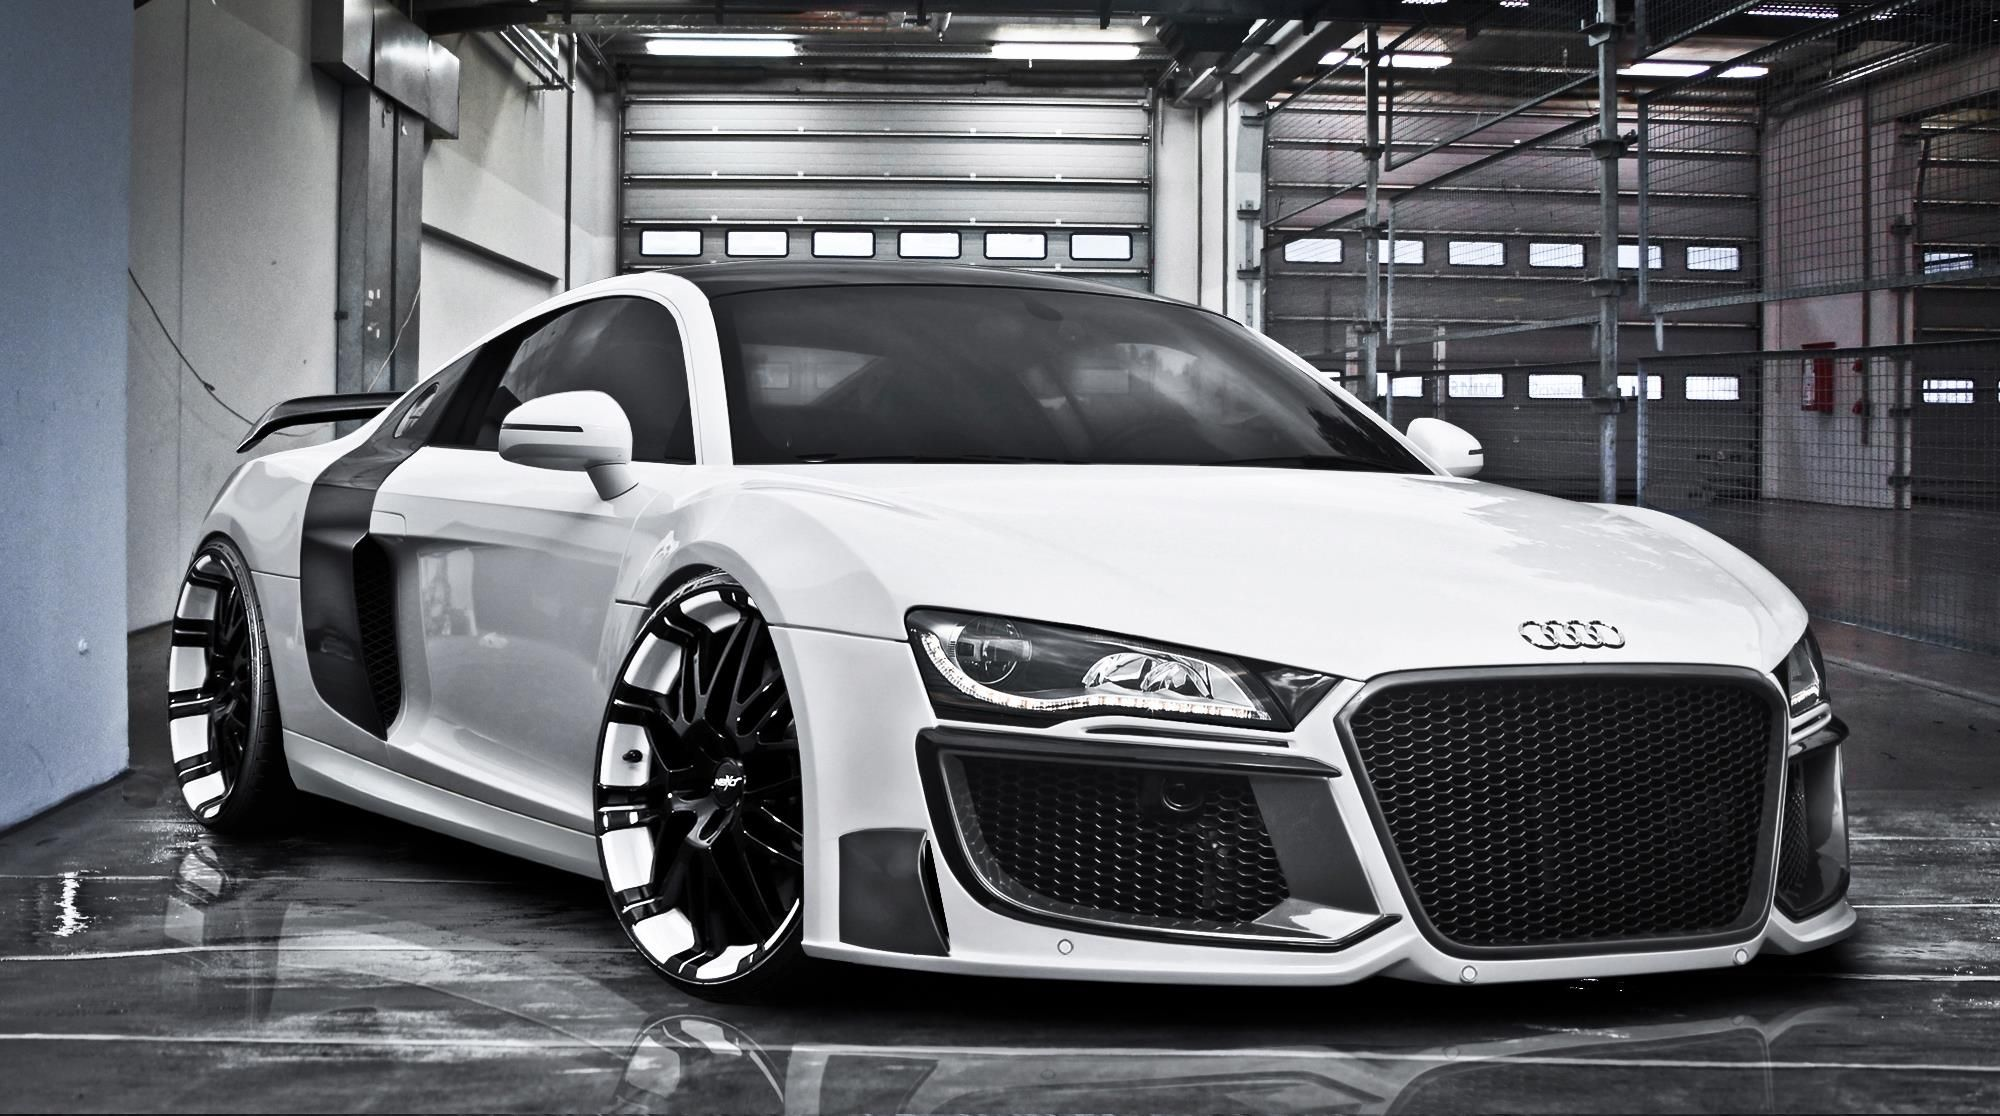 Audi RS Stormtrooper Edition Cars Boats And Other Fun Toys - Audi rs8